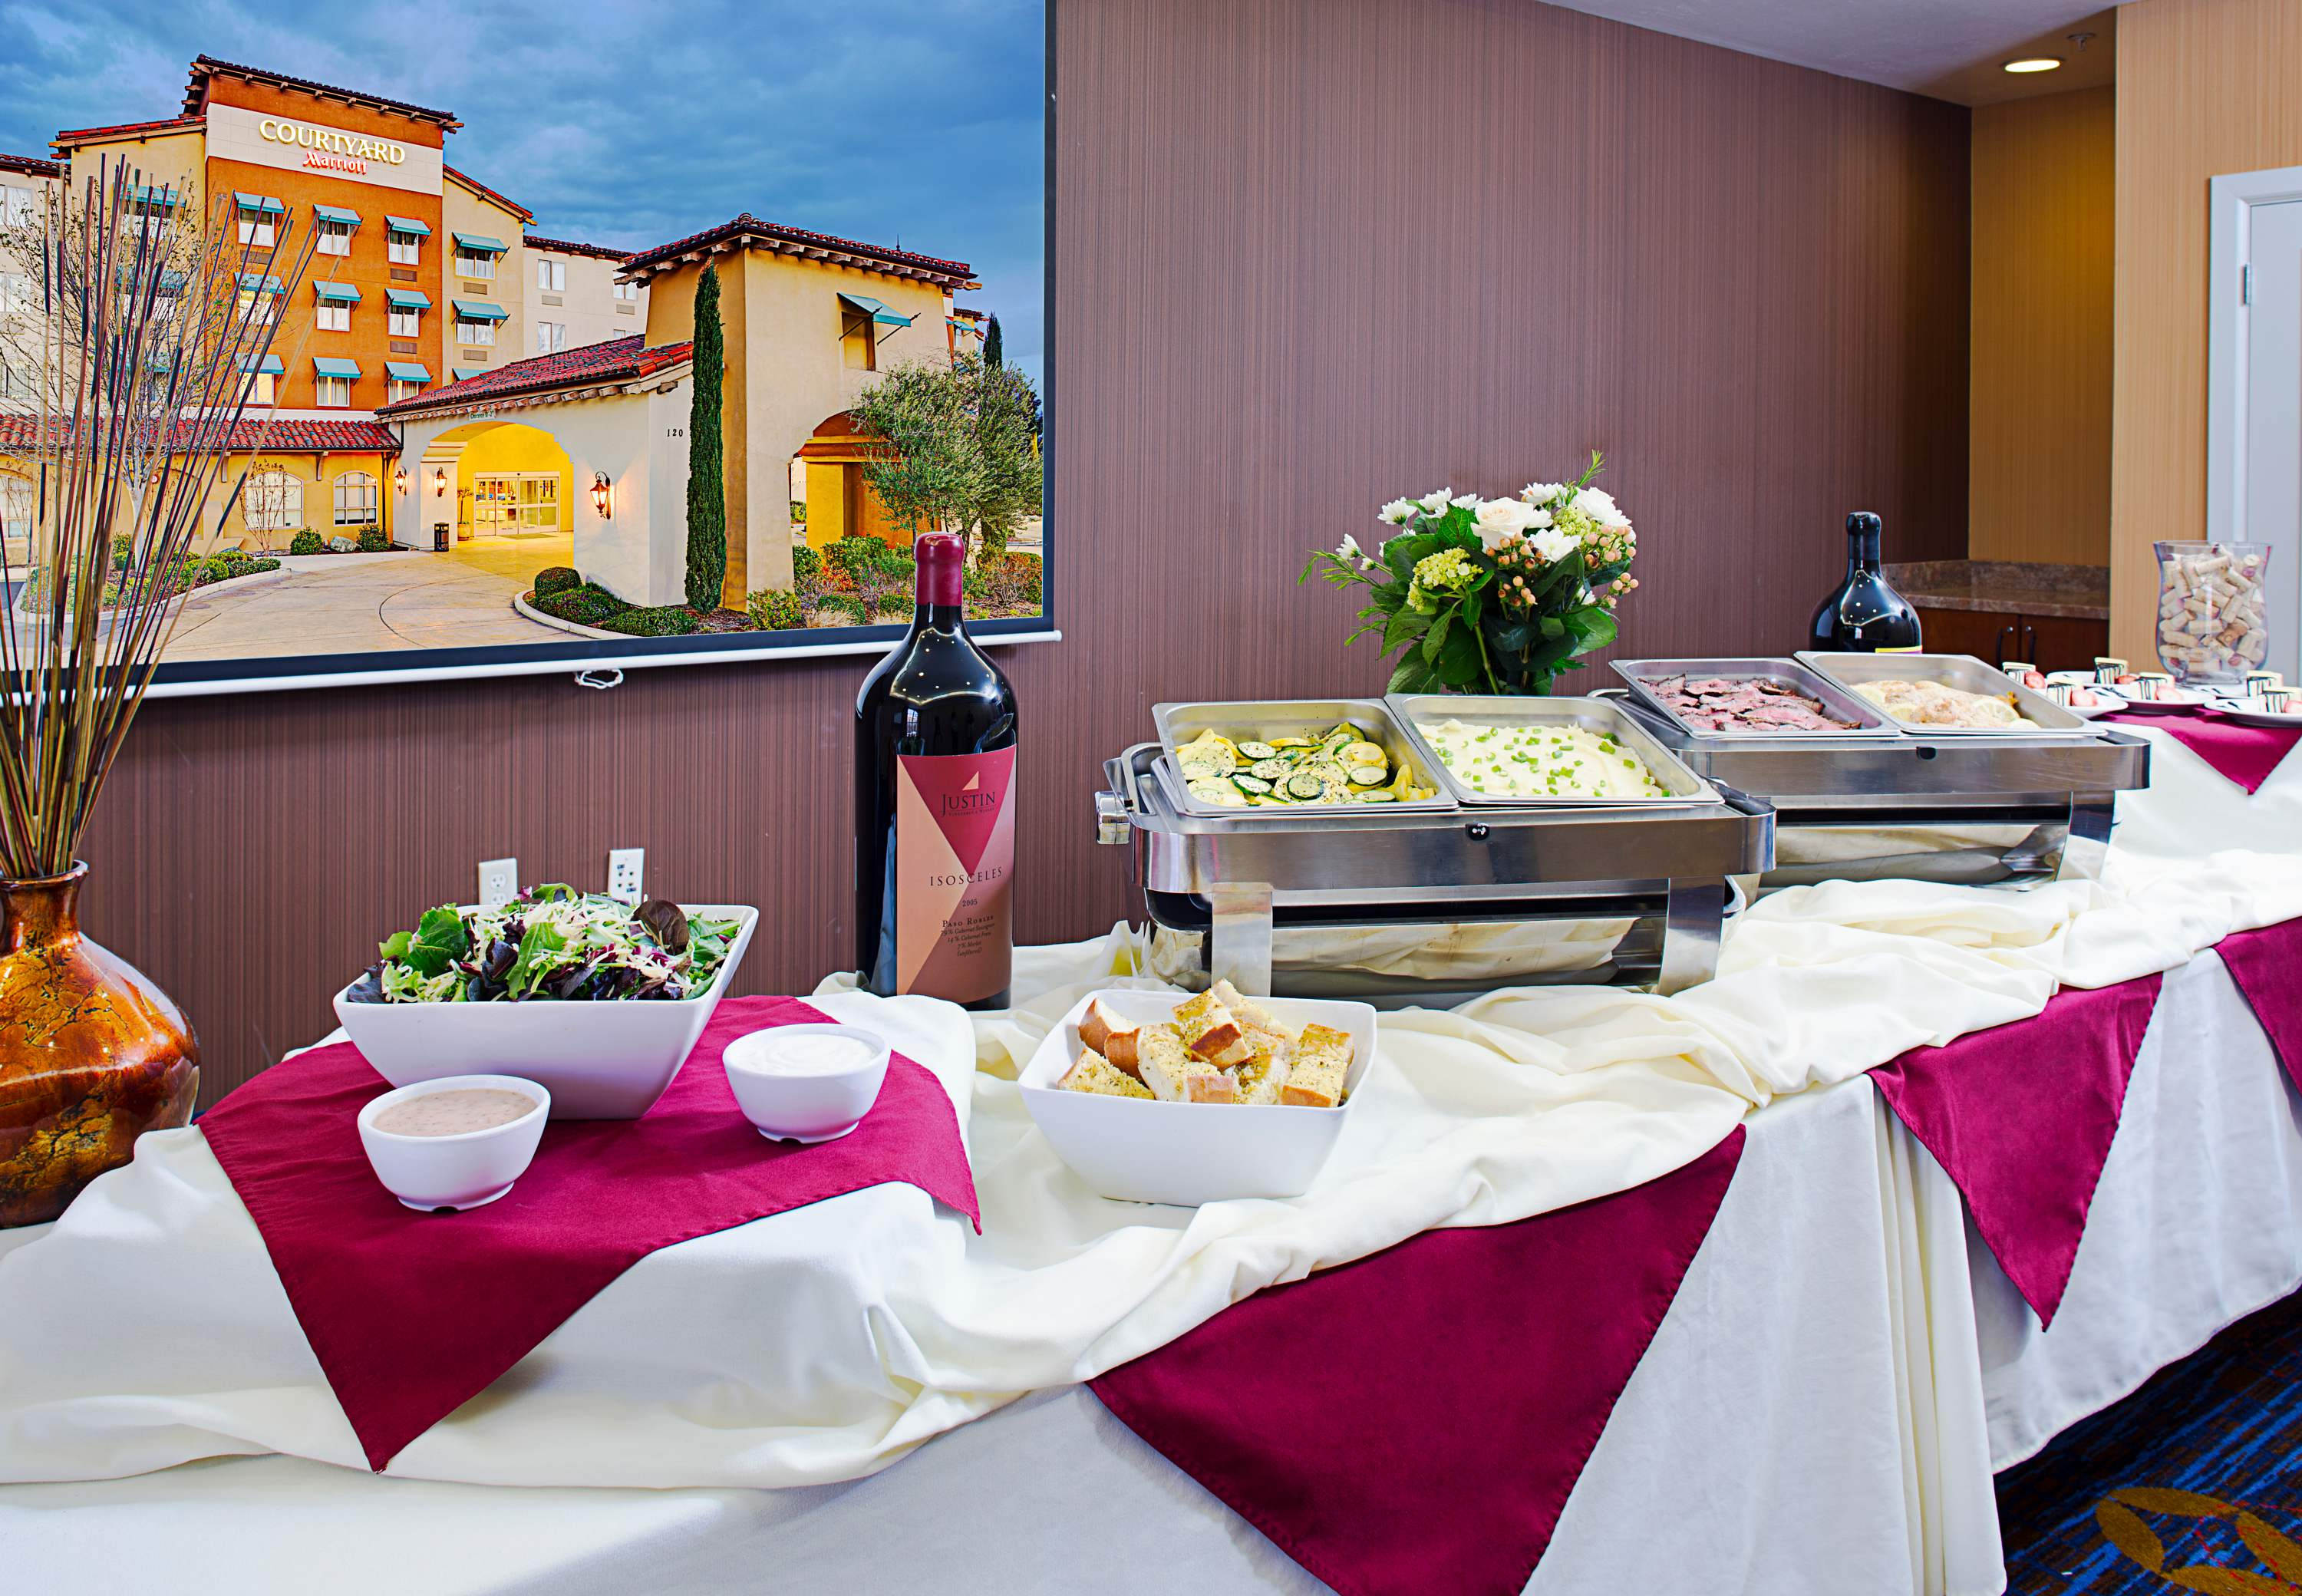 Courtyard by Marriott Paso Robles image 19